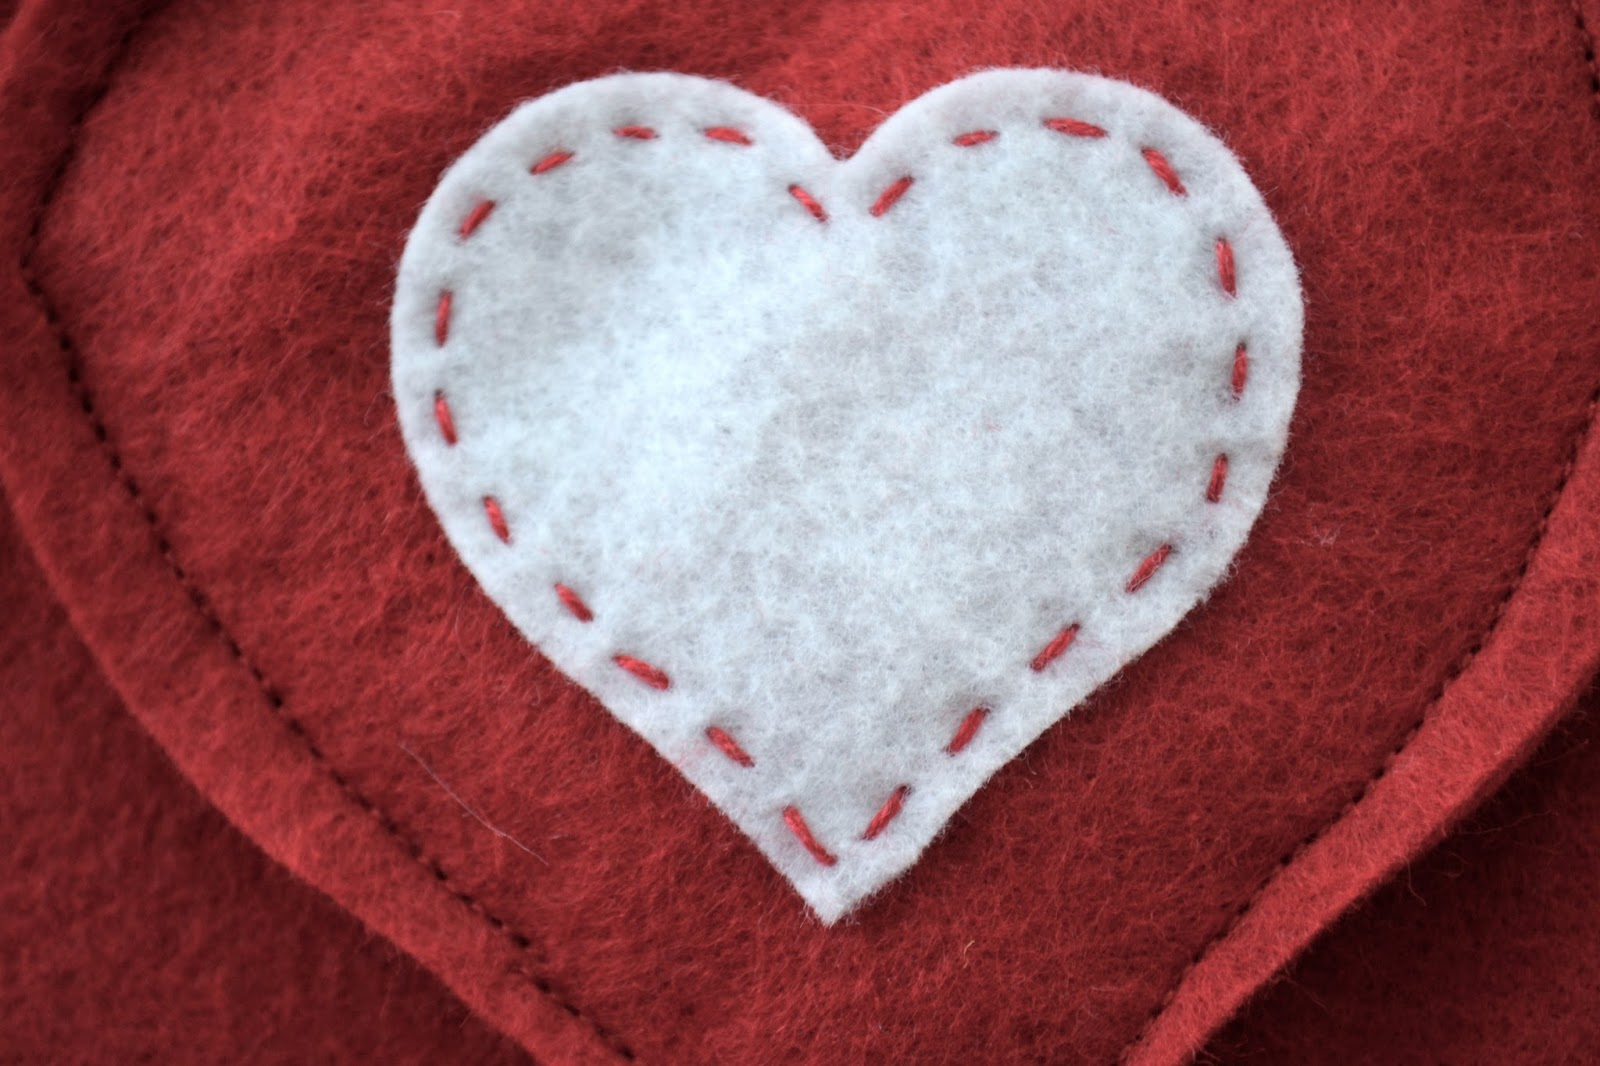 ... heart stitched broken heart stitched heart tattoo stitched heart